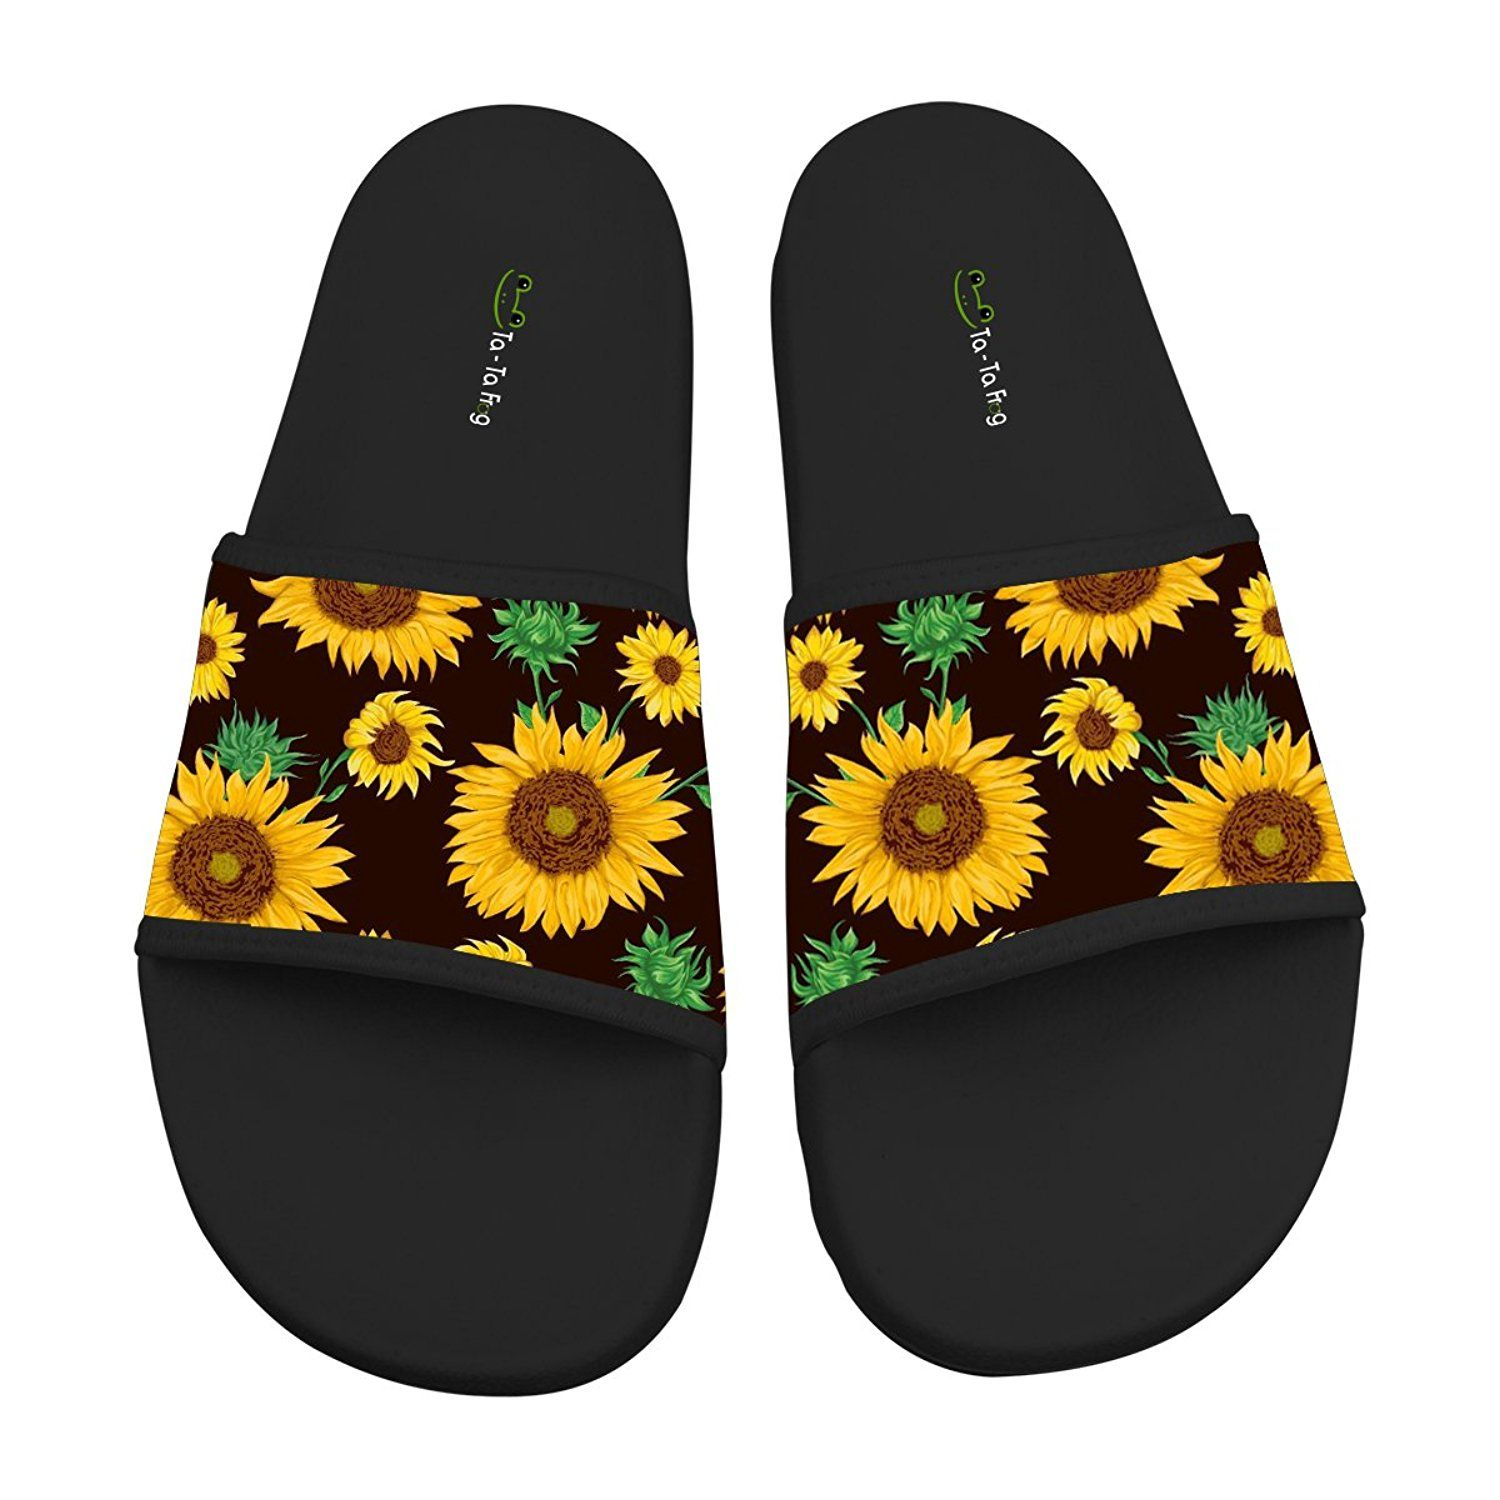 bc6493529aa66 Hawaii Sunflower Soft Slide Sandal Slippers Flats Flip Flops Open toed  Summer Beach Shoes for Couples